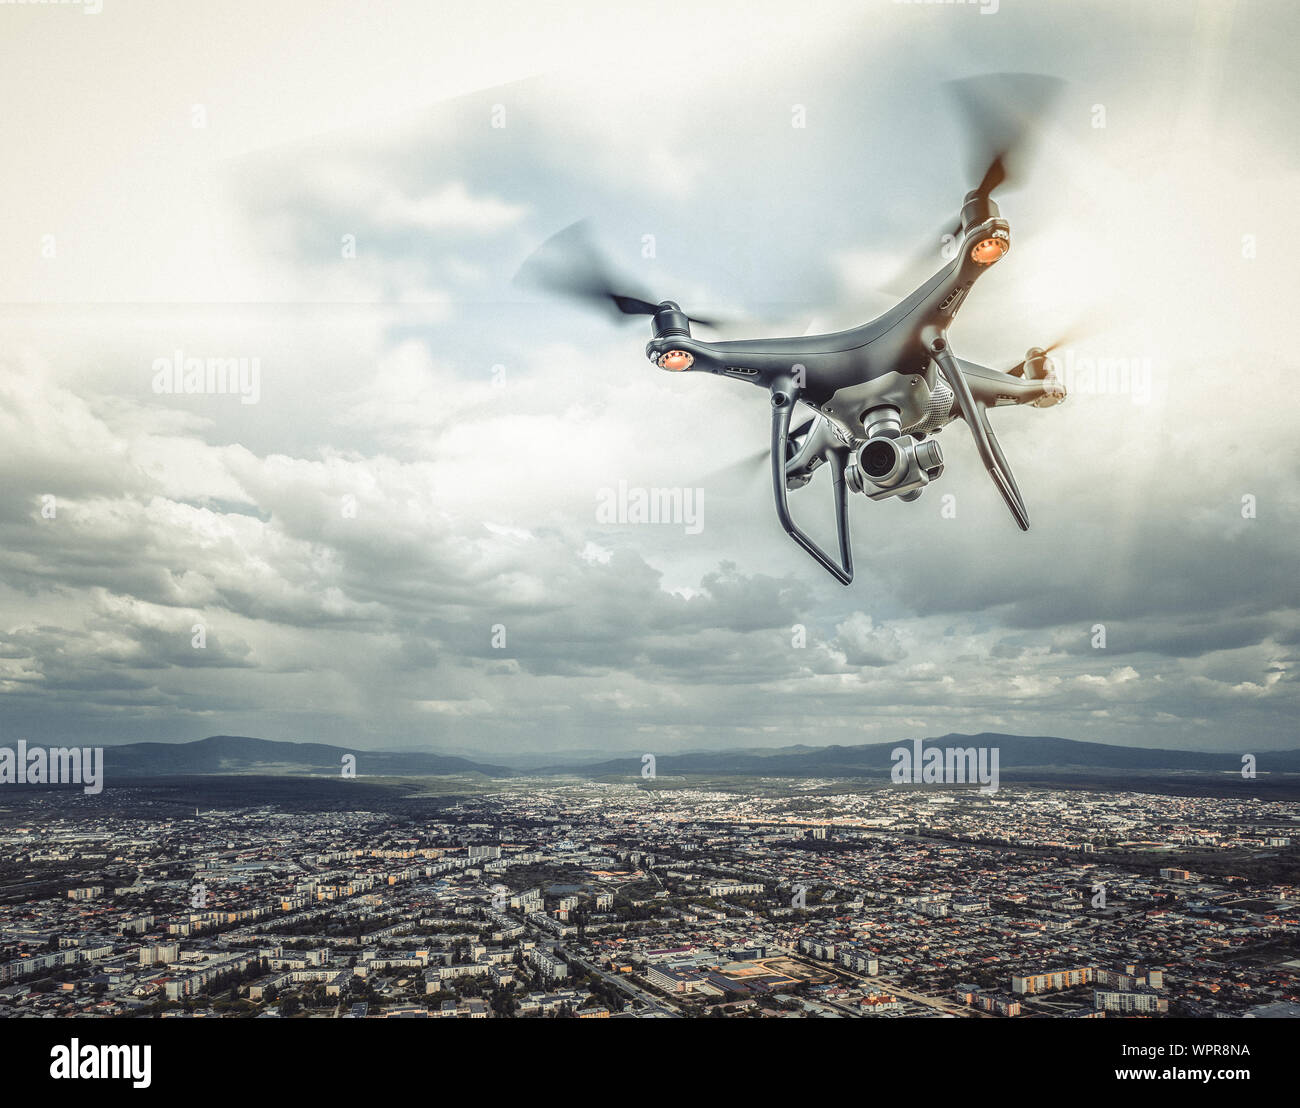 The drone is flying over the city. Stock Photo